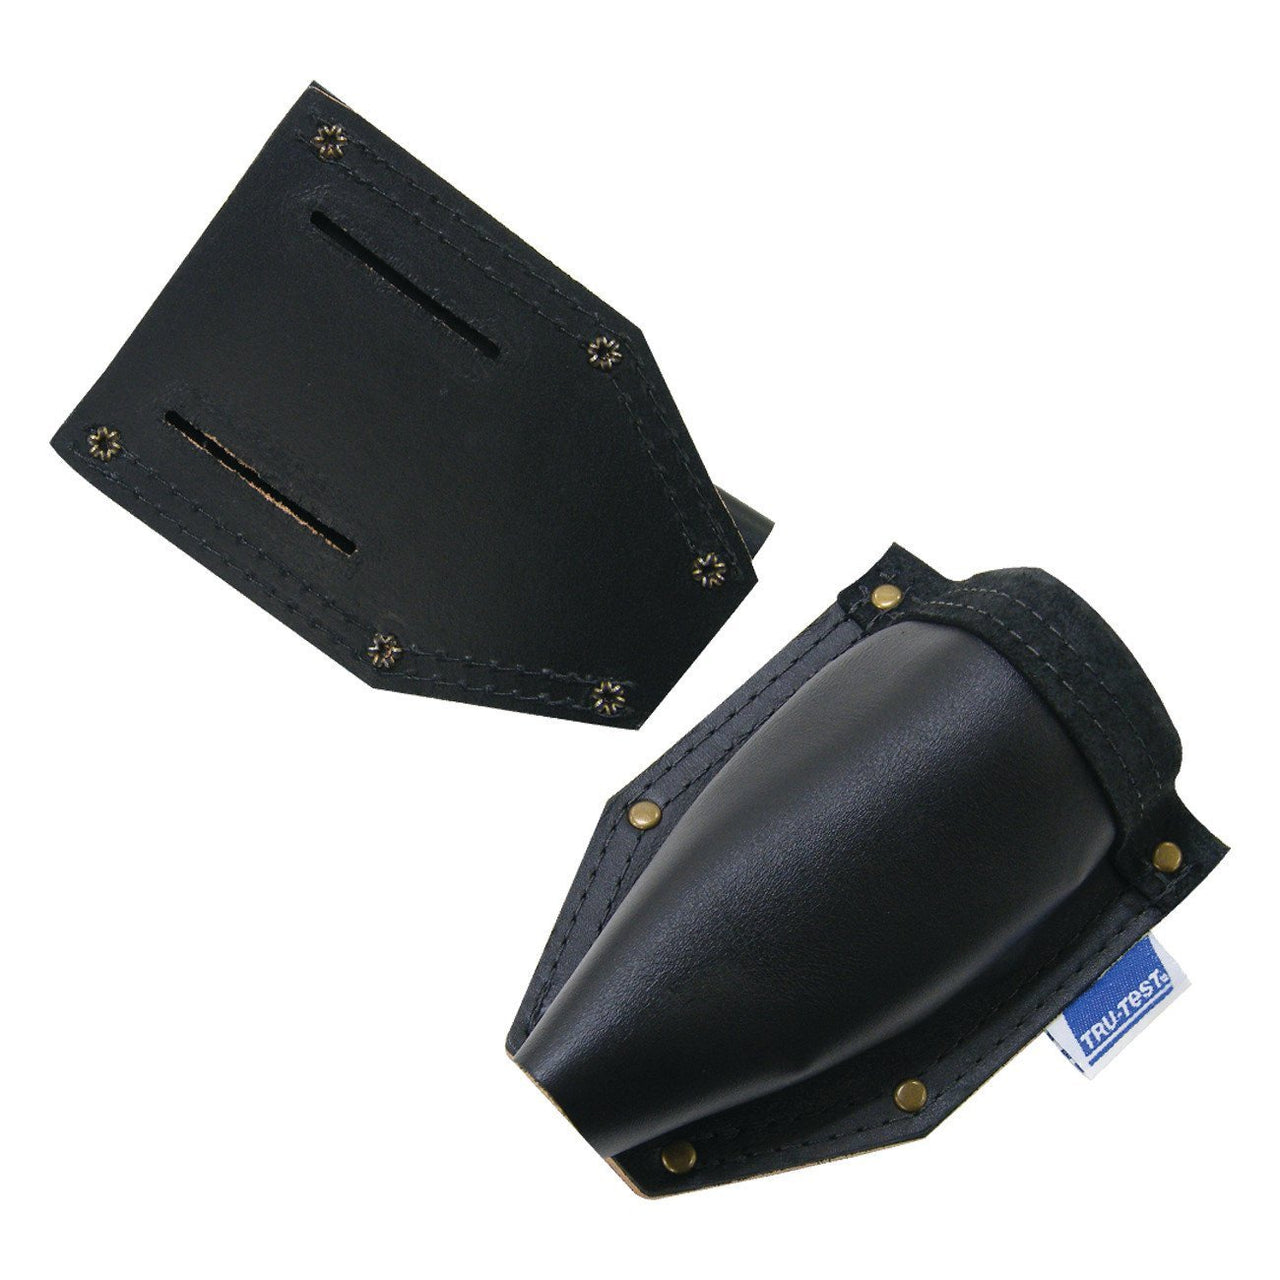 Tru-Test Xrs Leather Holster - Scales Eid Readers Trutest - Canada